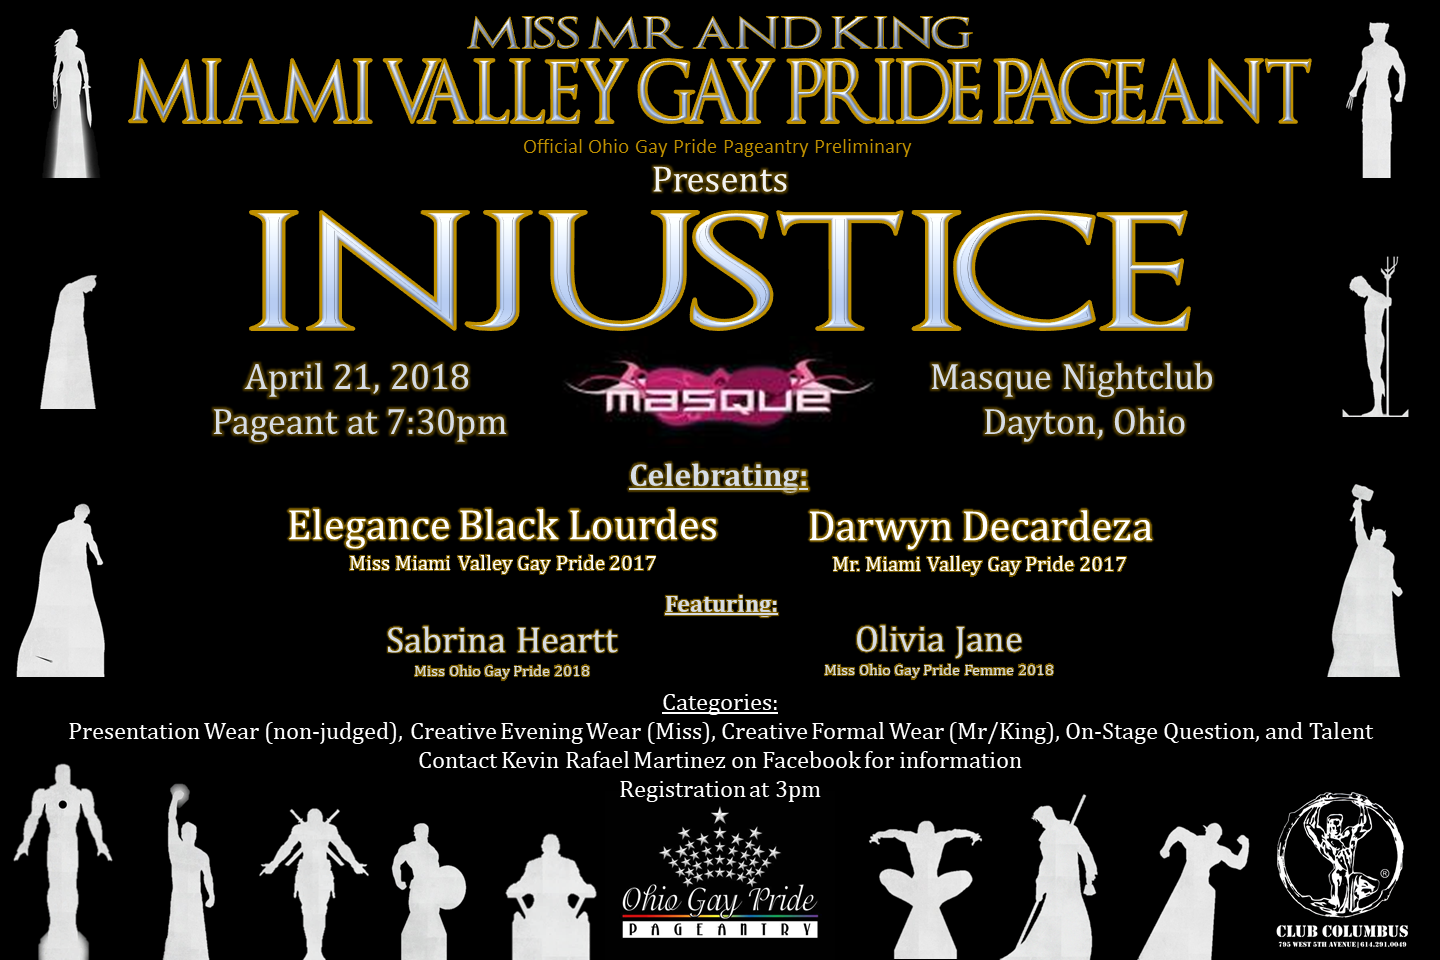 Show Ad | Miss Miami Valley Gay Pride, Mr. Miami Valley Gay Pride and Mr. Miami Valley Gay Pride King | Masque (Dayton, Ohio) | 4/21/2018